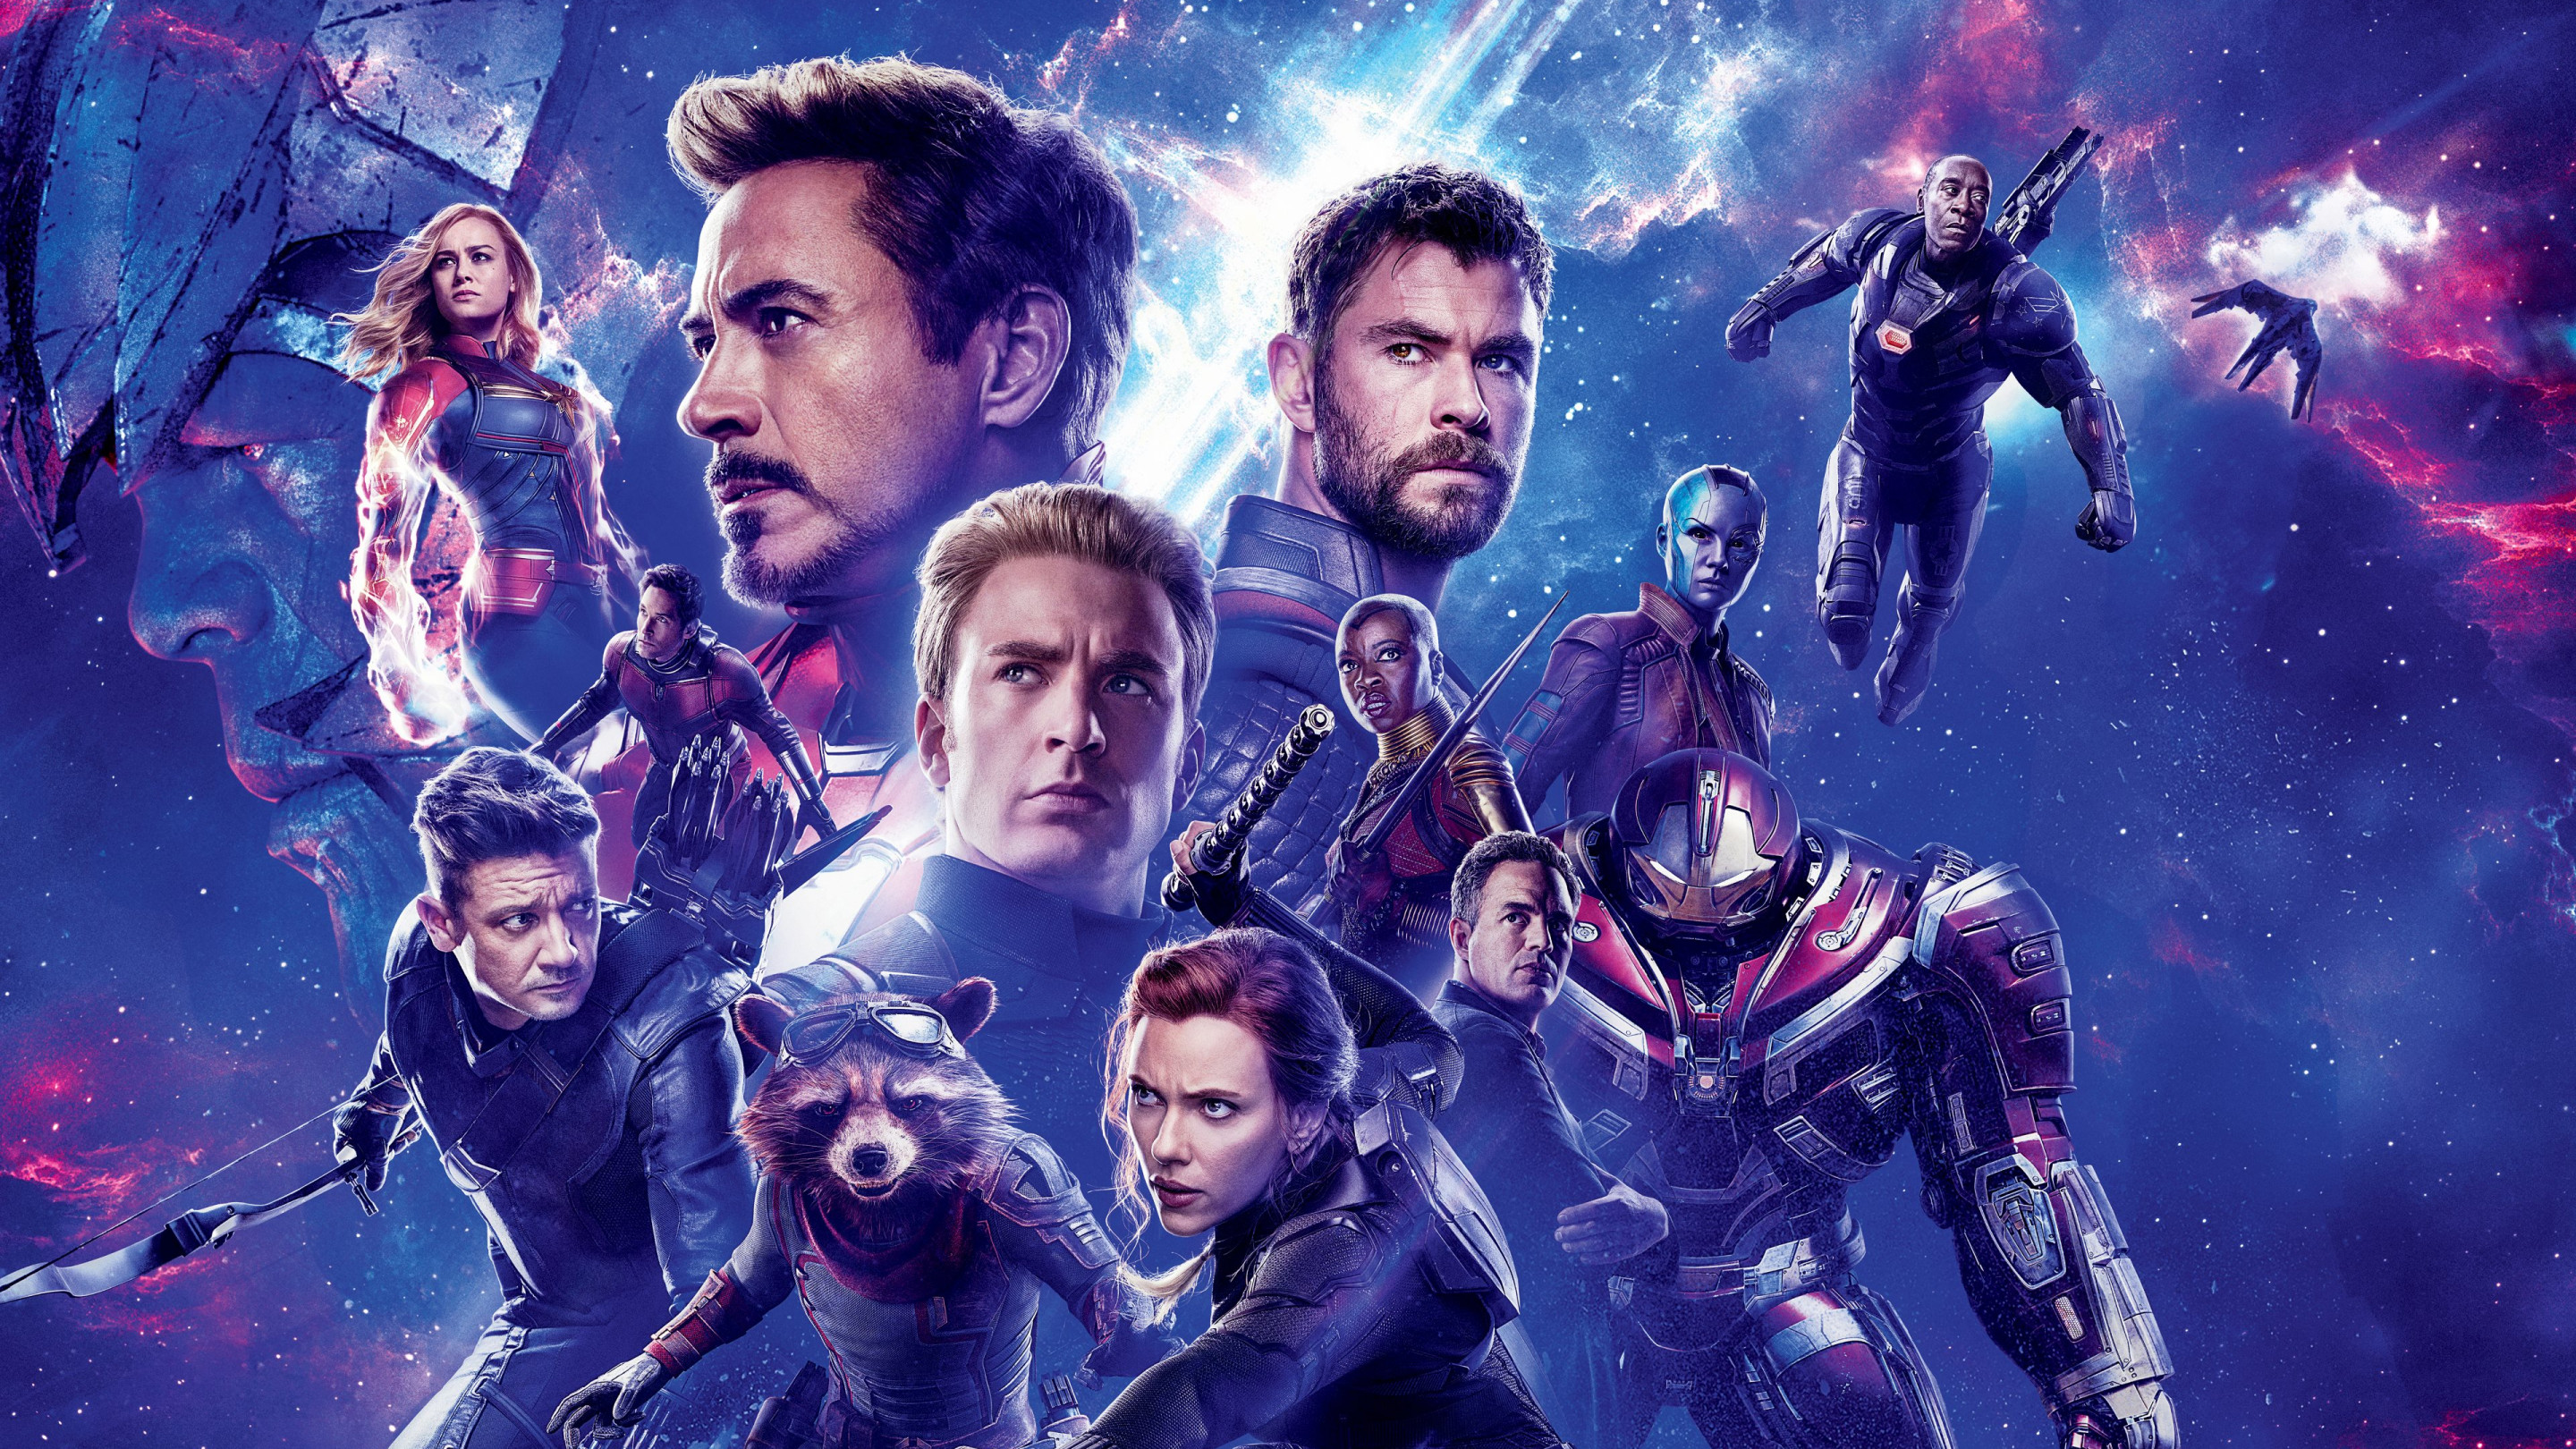 Avengers: Endgame wallpaper 2880x1620